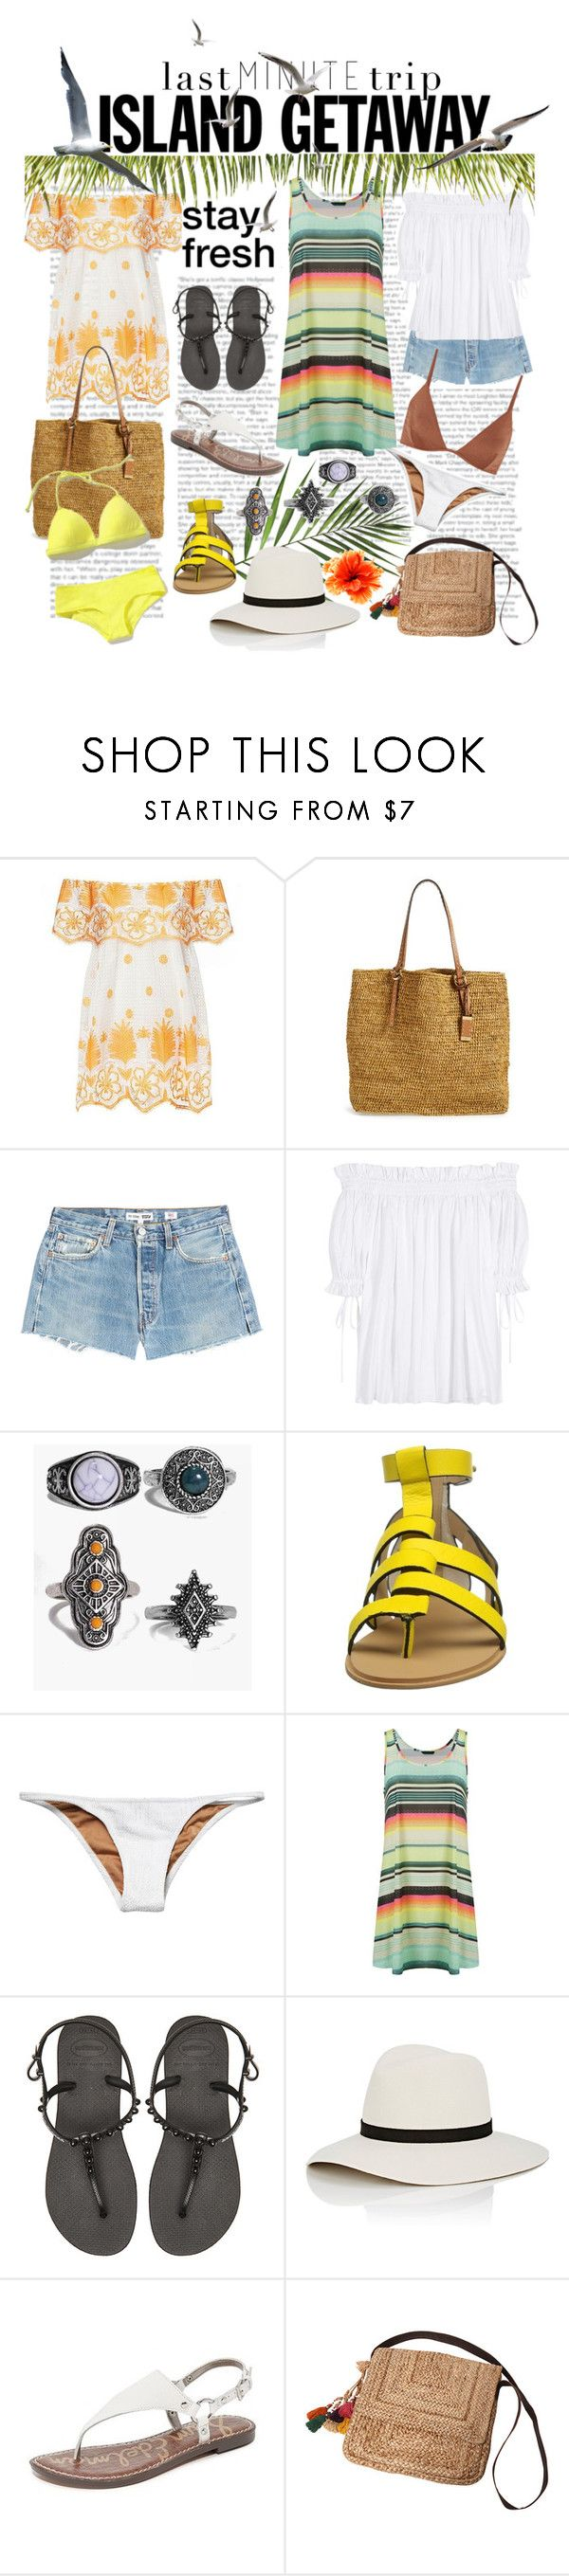 """""""Chic Island Getaway"""" by mia-christine ❤ liked on Polyvore featuring Miguelina, Michael Kors, RE/DONE, Alexander McQueen, Boohoo, Joe's Jeans, Made By Dawn, Lygia & Nanny, Havaianas and Janessa Leone"""